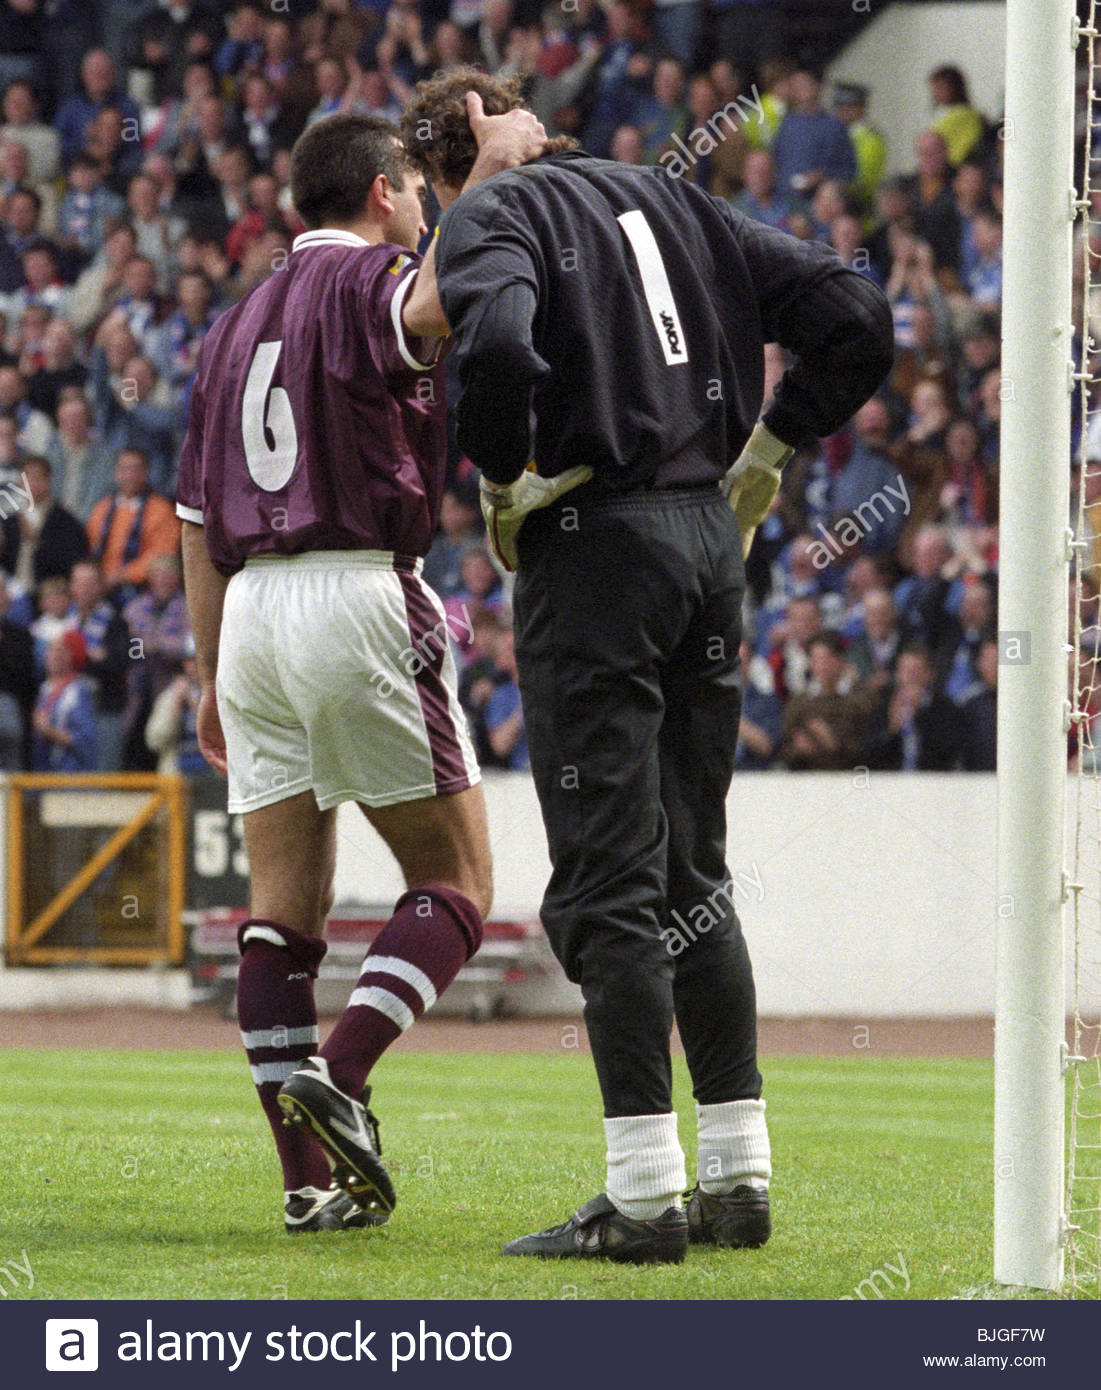 18/05/96 TENNENT'S SCOTTISH CUP FINAL RANGERS V HEARTS (5-1) HAMPDEN - GLASGOW Gilles Rousset is consoled by - Stock Image